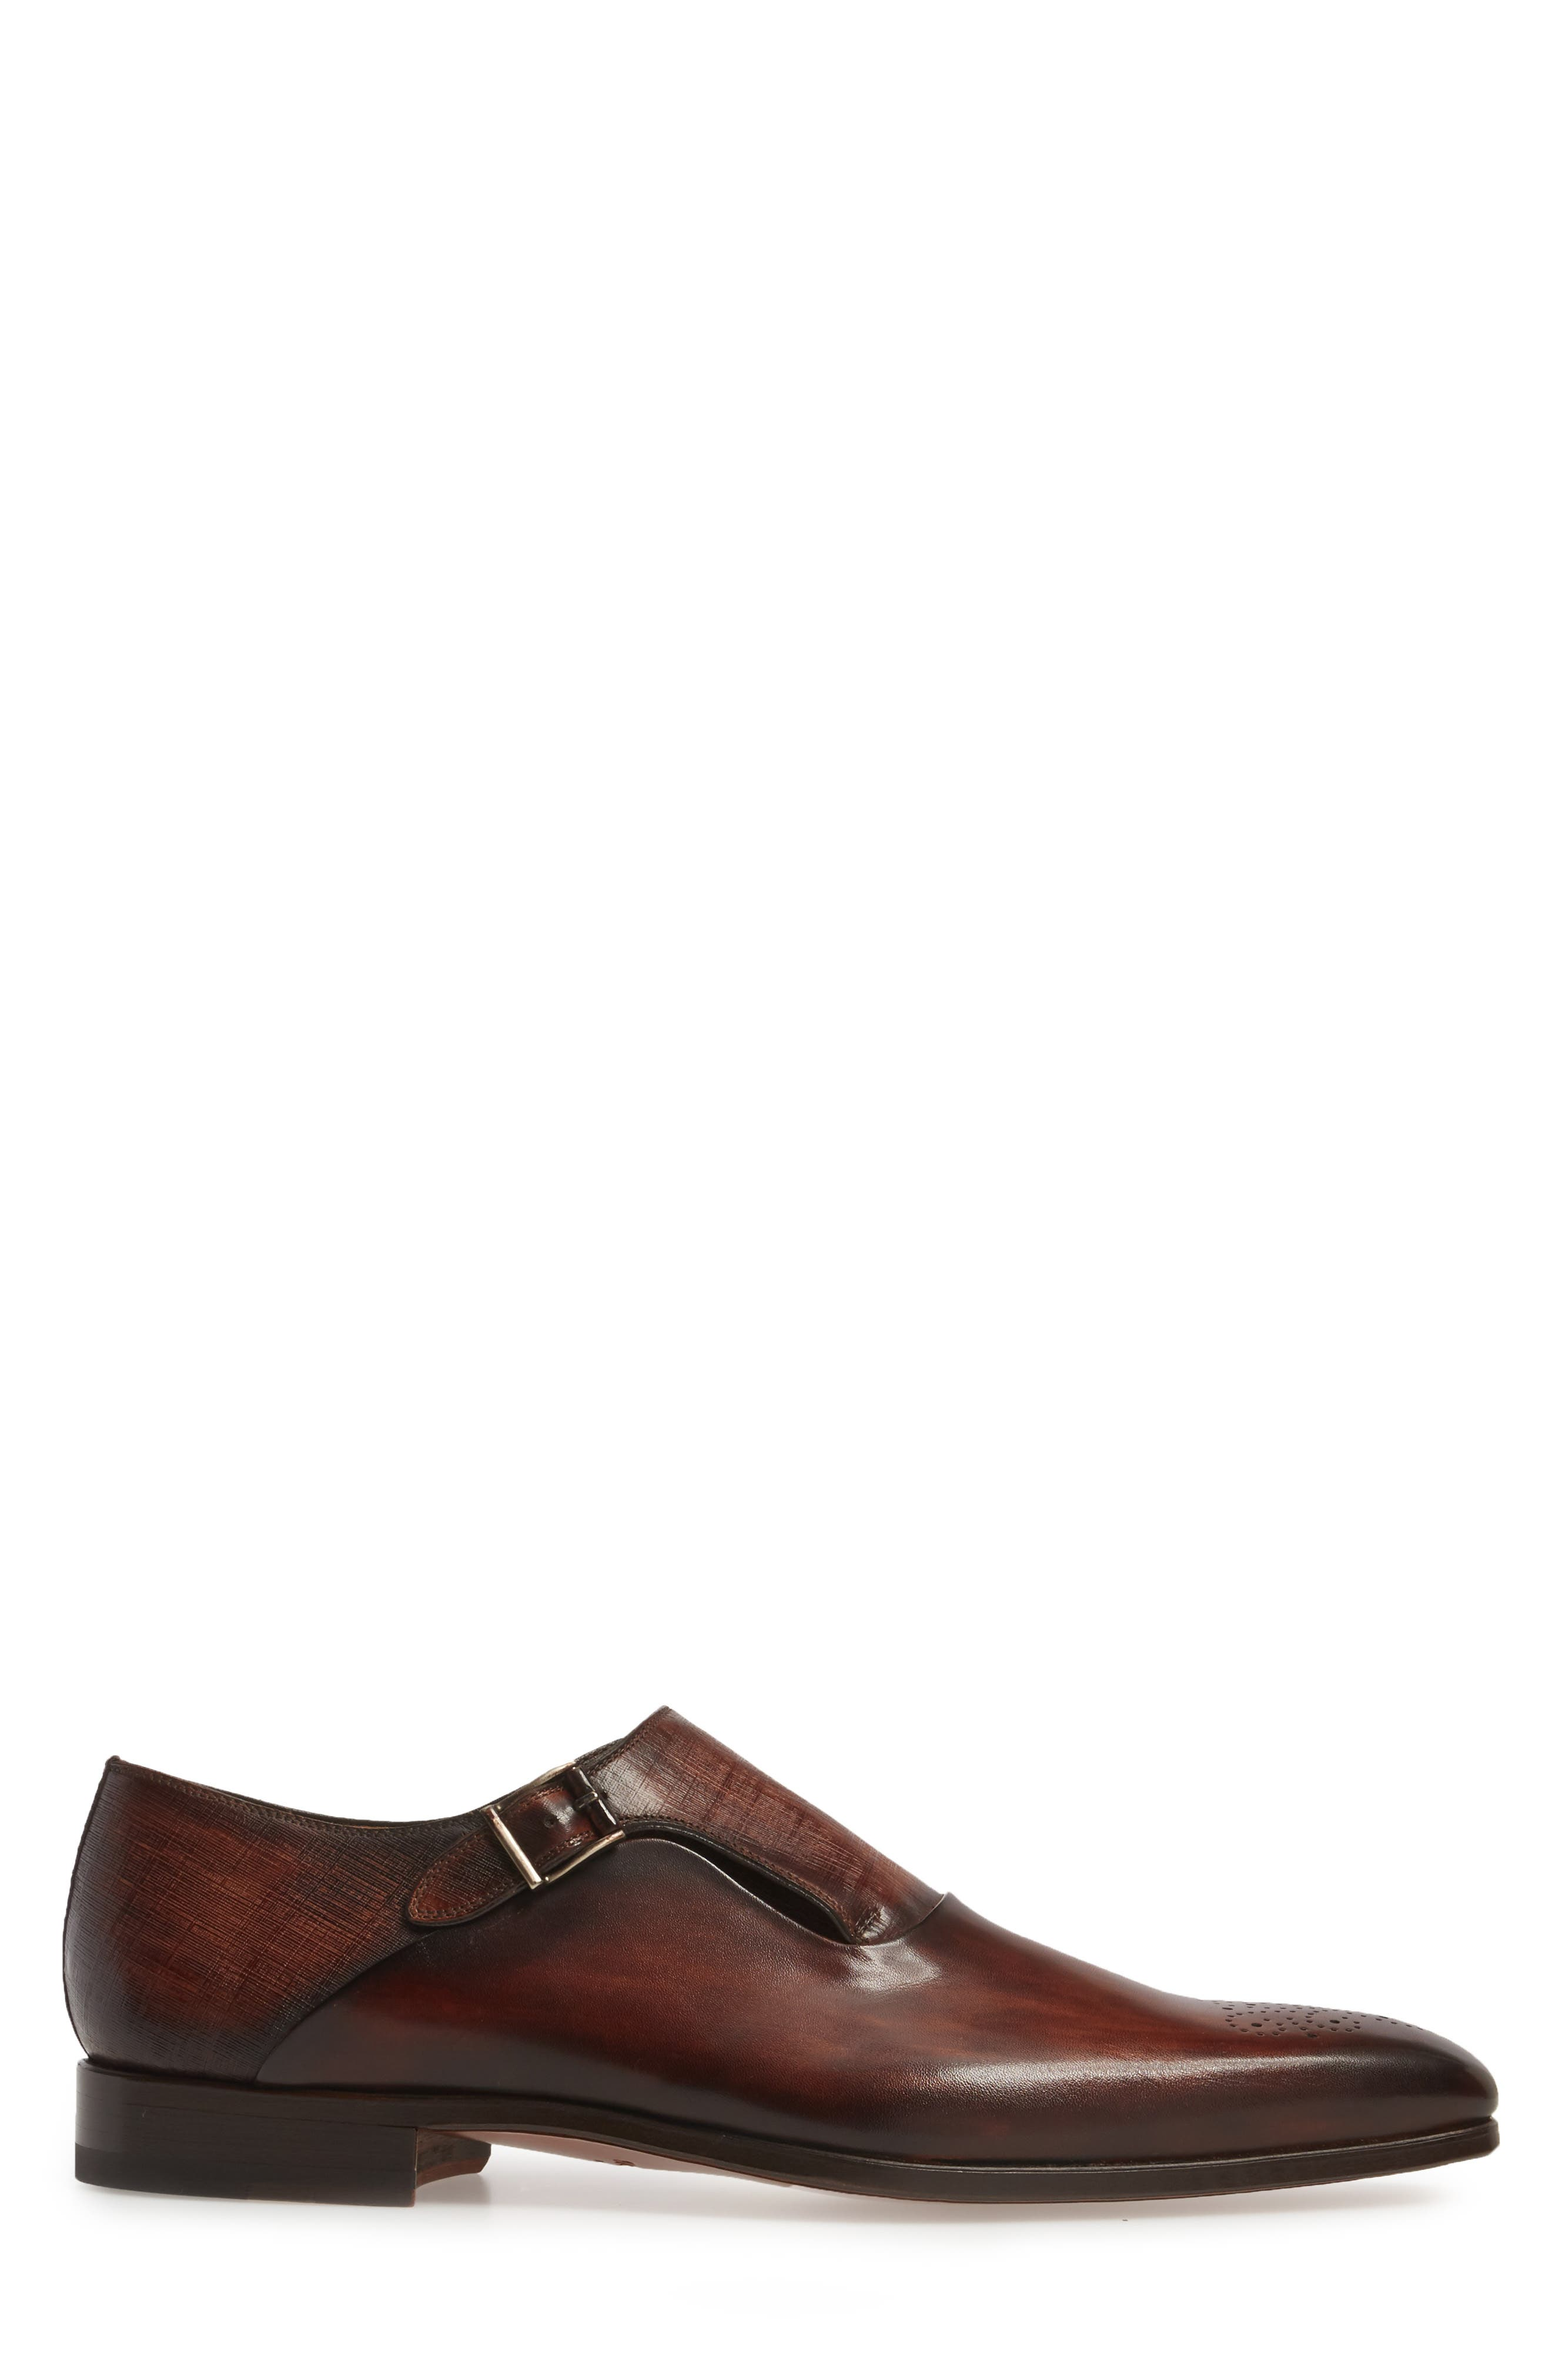 Alternate Image 3  - Magnanni Saburo Monk Strap Shoe (Men)